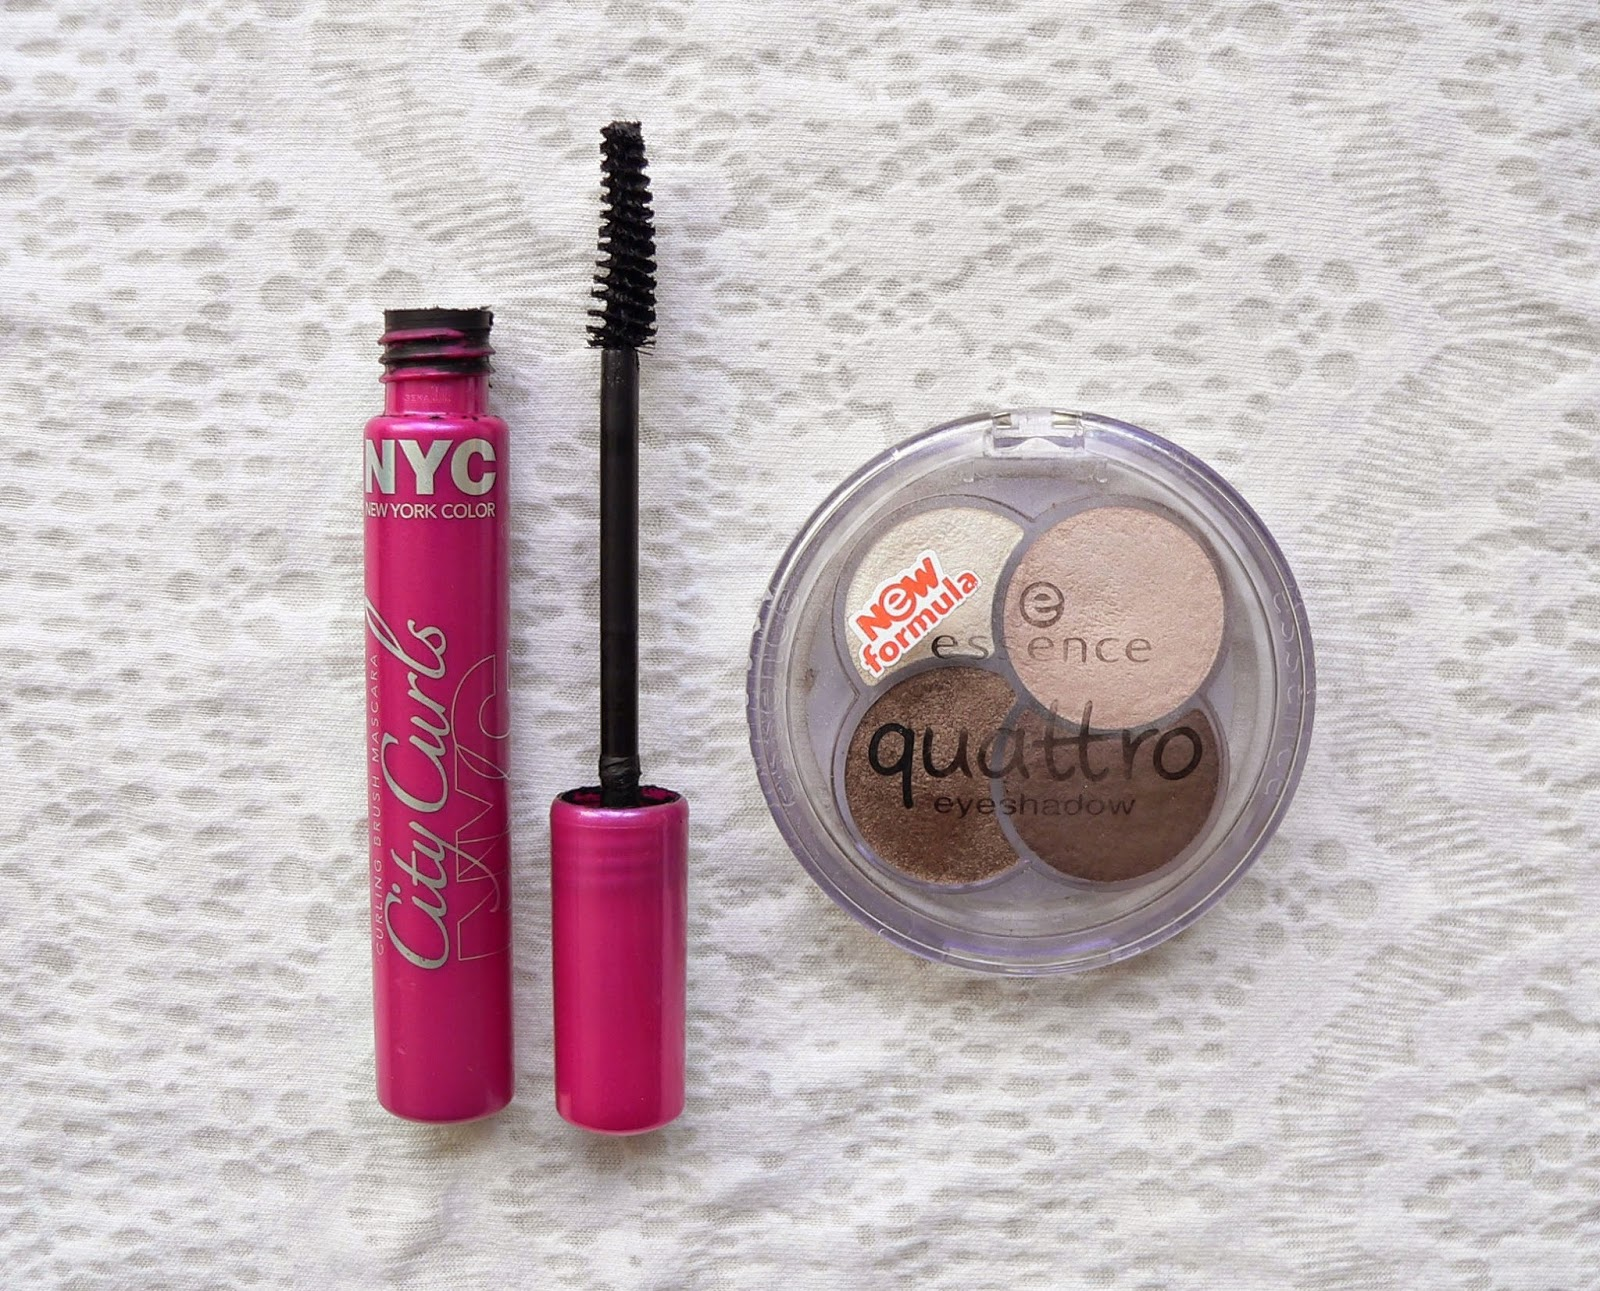 Nyc citi curls mascara, budget, review, make-up, oogschaduw, essence, quattro, to die for